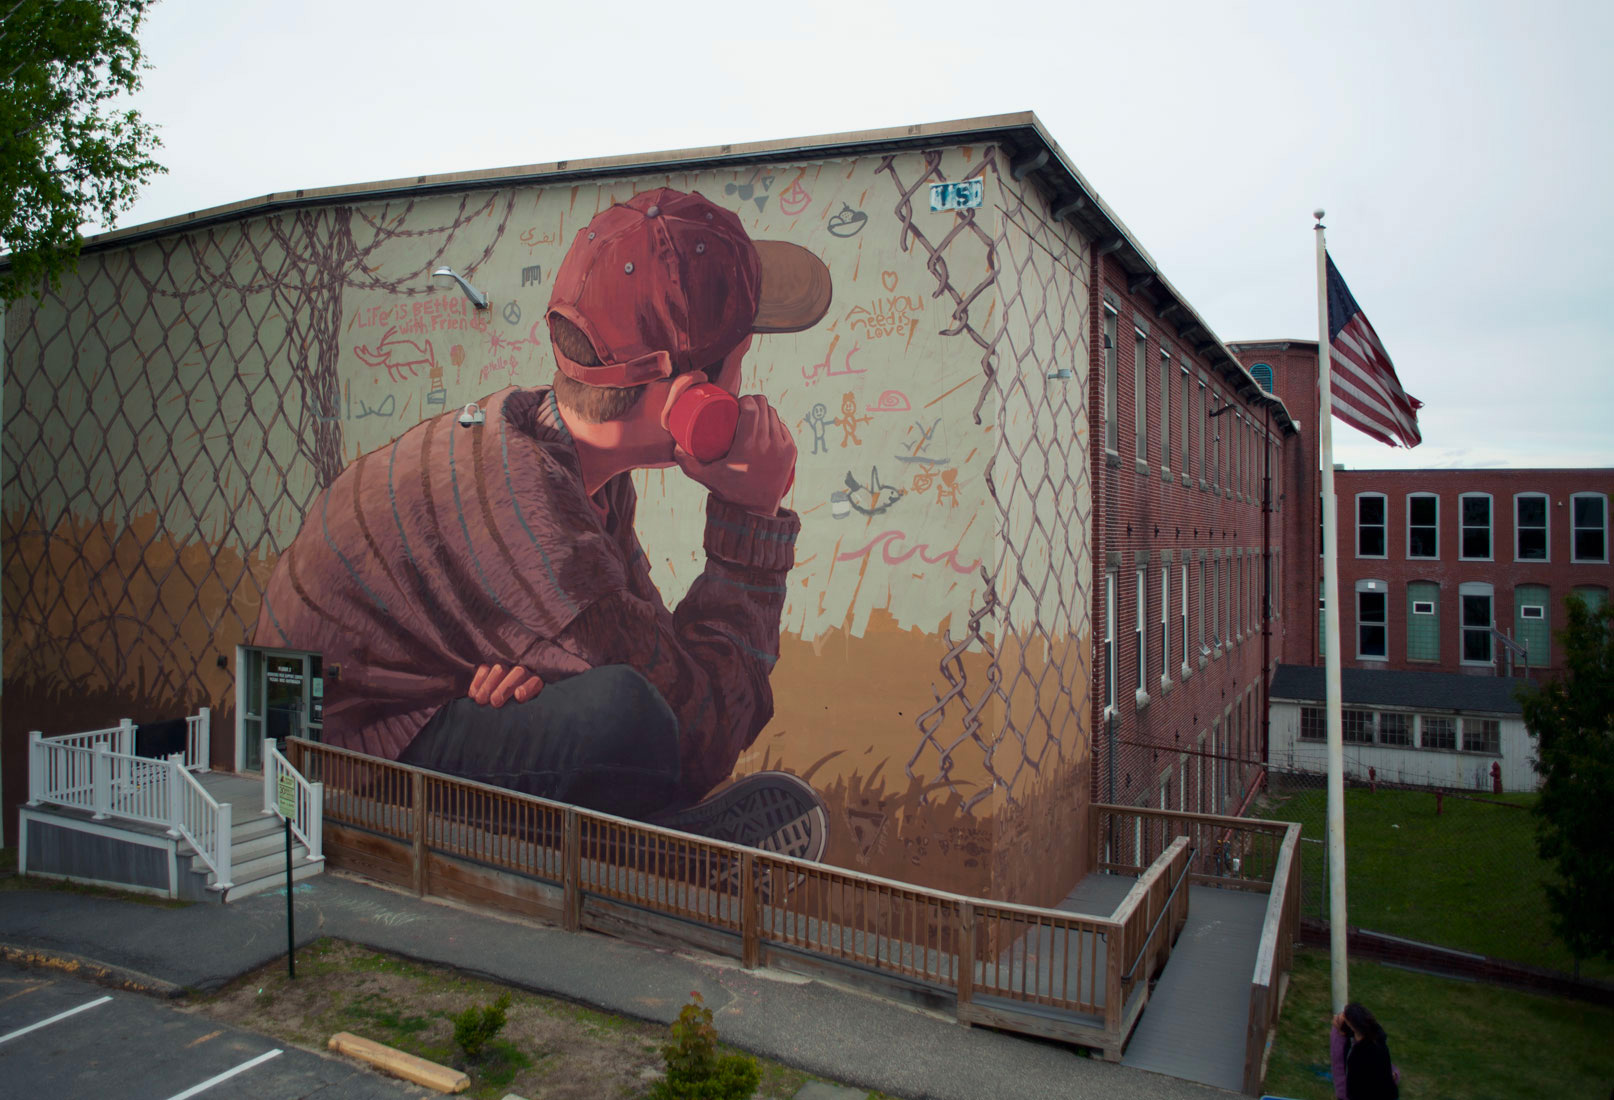 Two Collaborative Murals by Pat Perry and Local Schoolchildren Connect Communities in Iraq and Maine